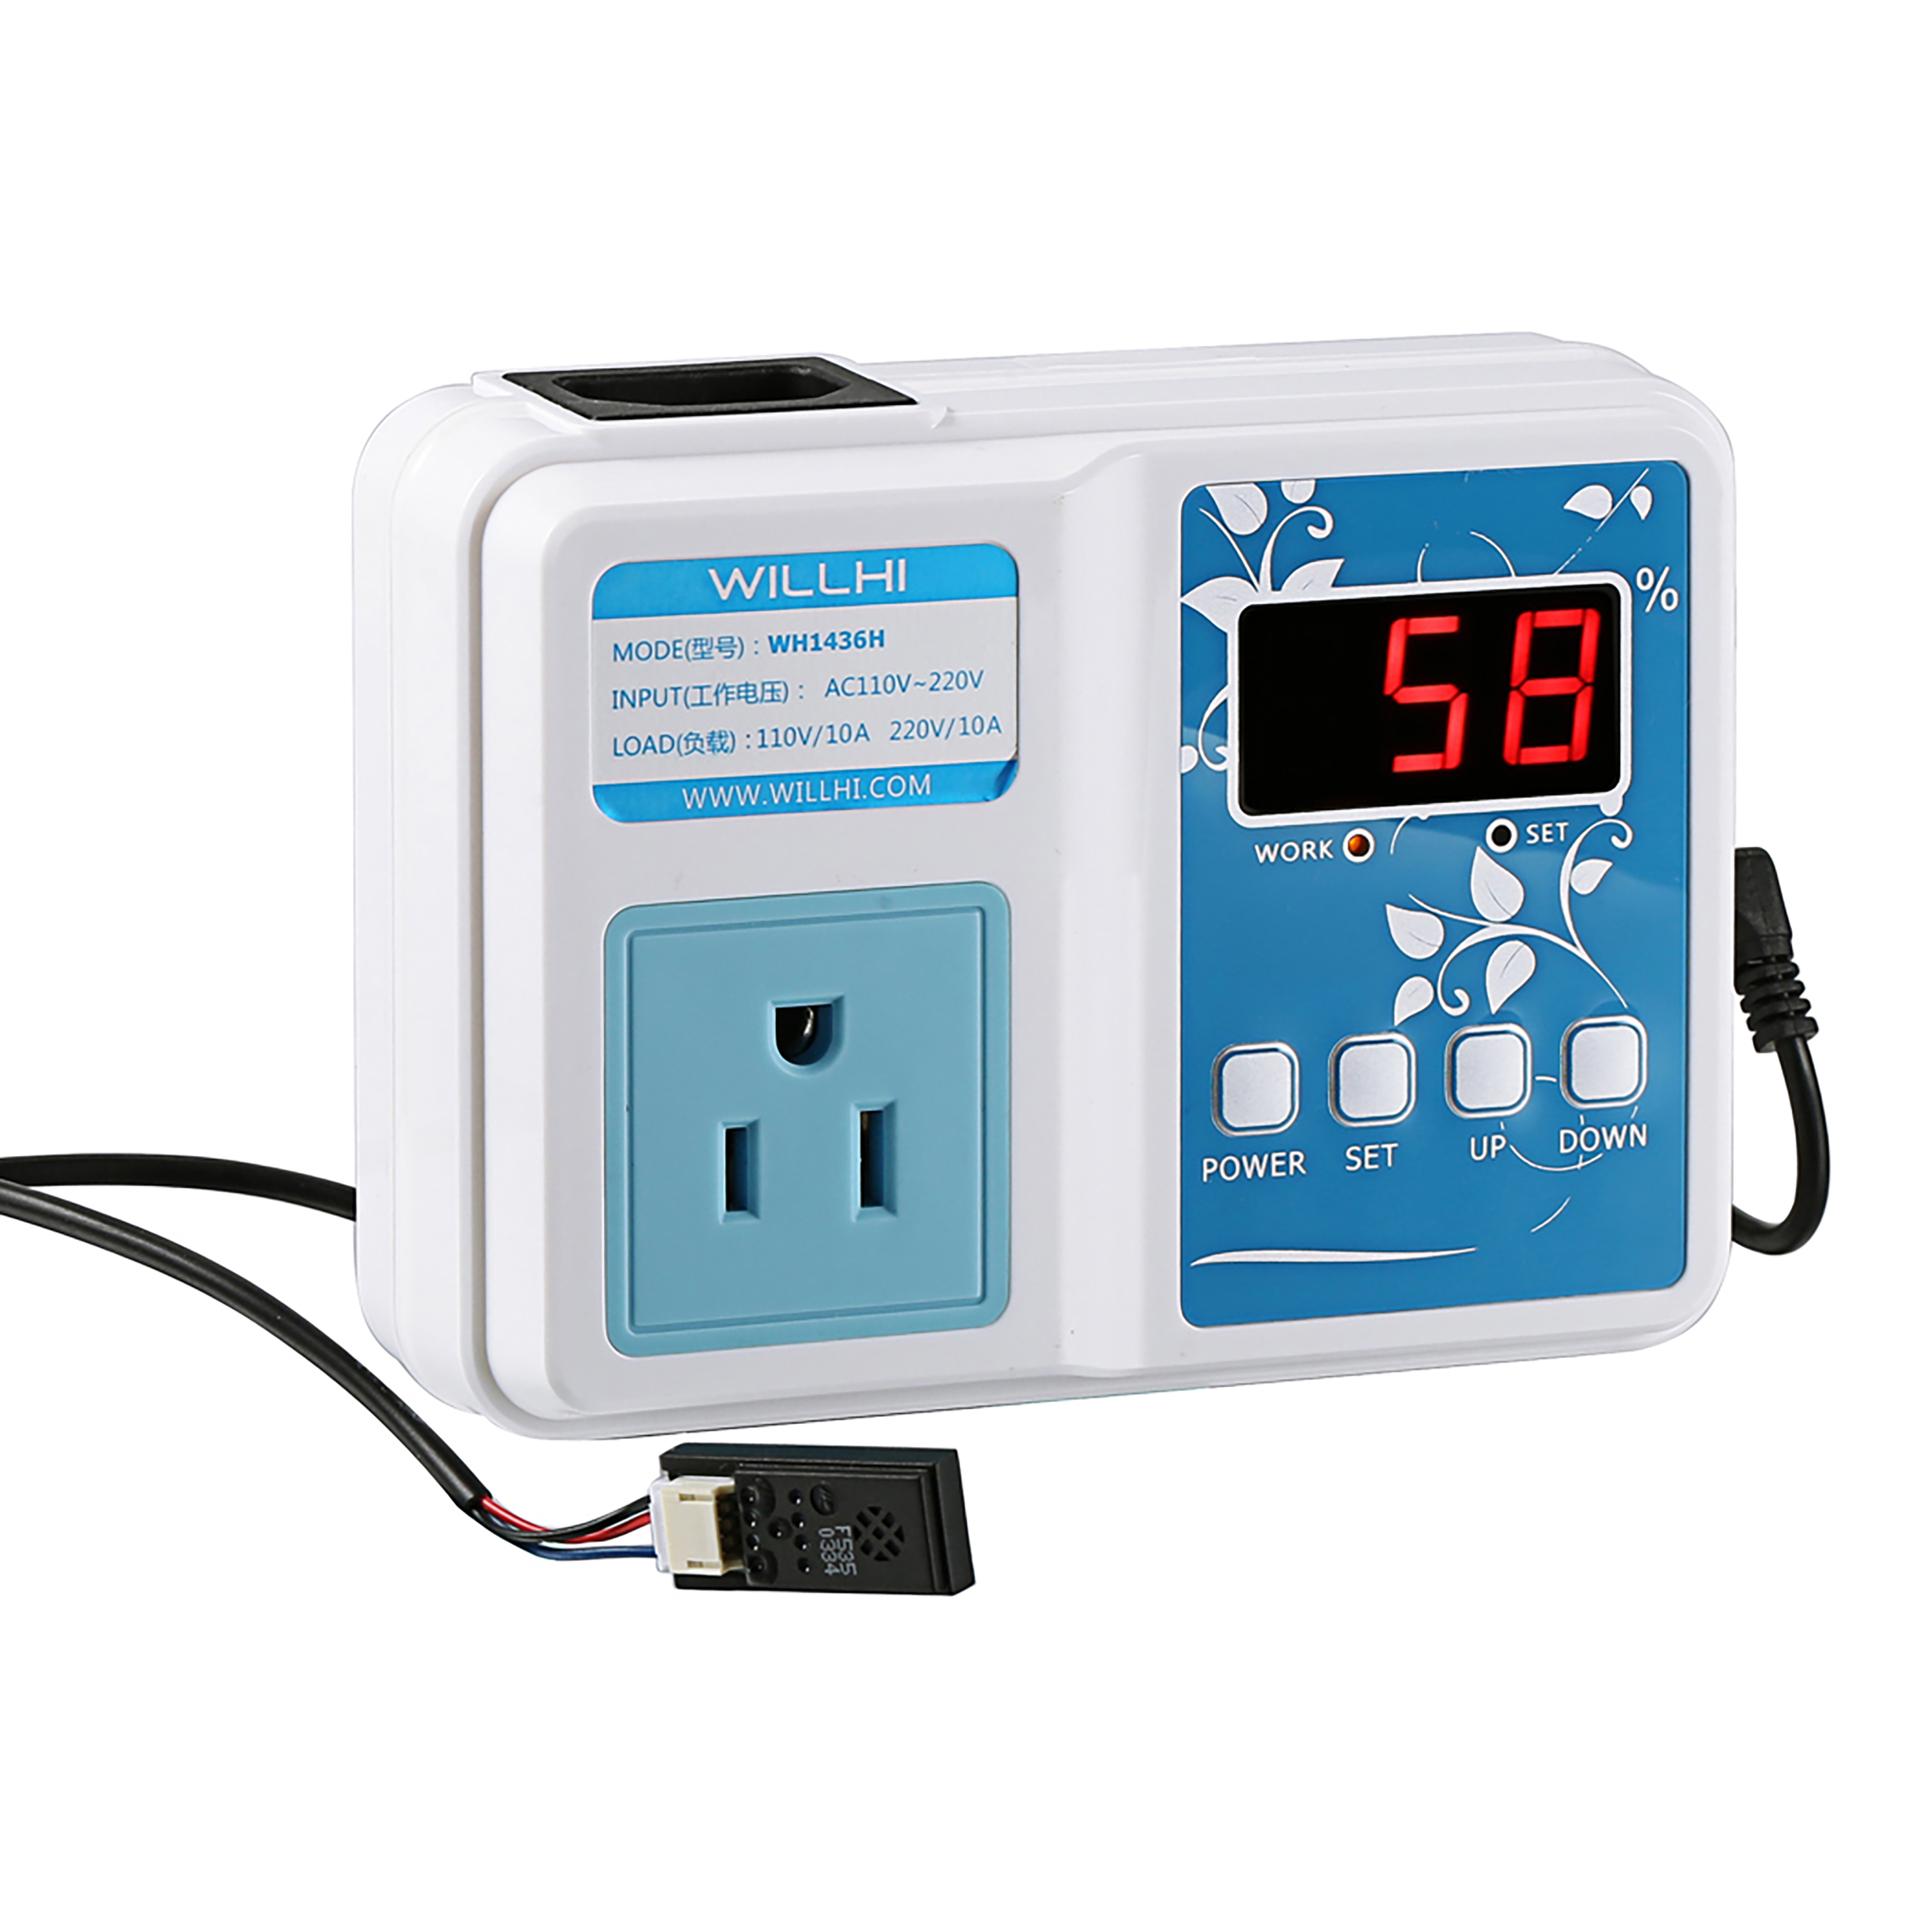 WILLHI WH1436H Air Humidity Controller Pre-Wired Outlet with Sensor ...